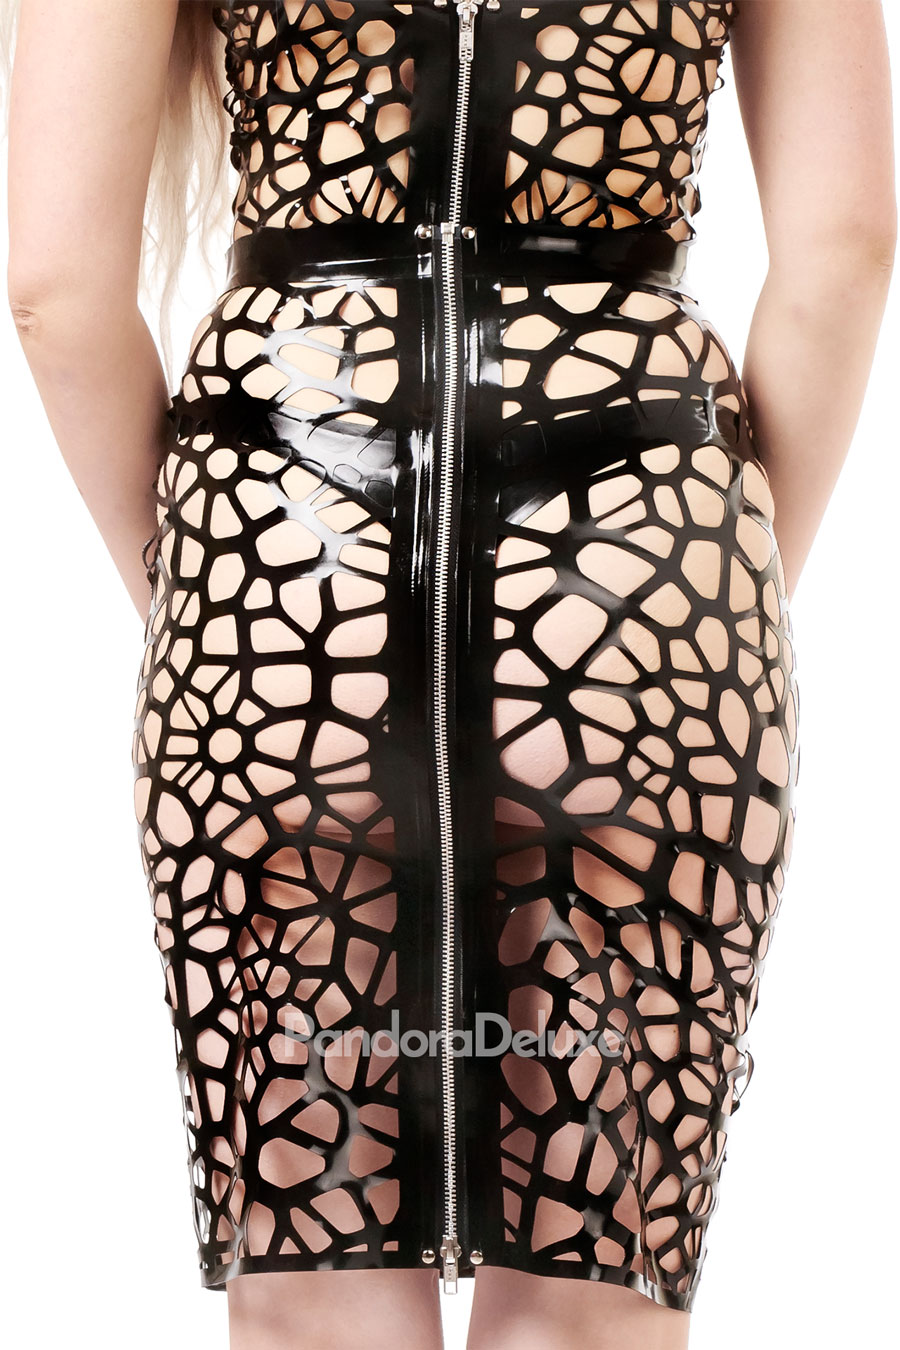 Astra Organic Structure Net Latex Pencil Skirt by Pandora Deluxe